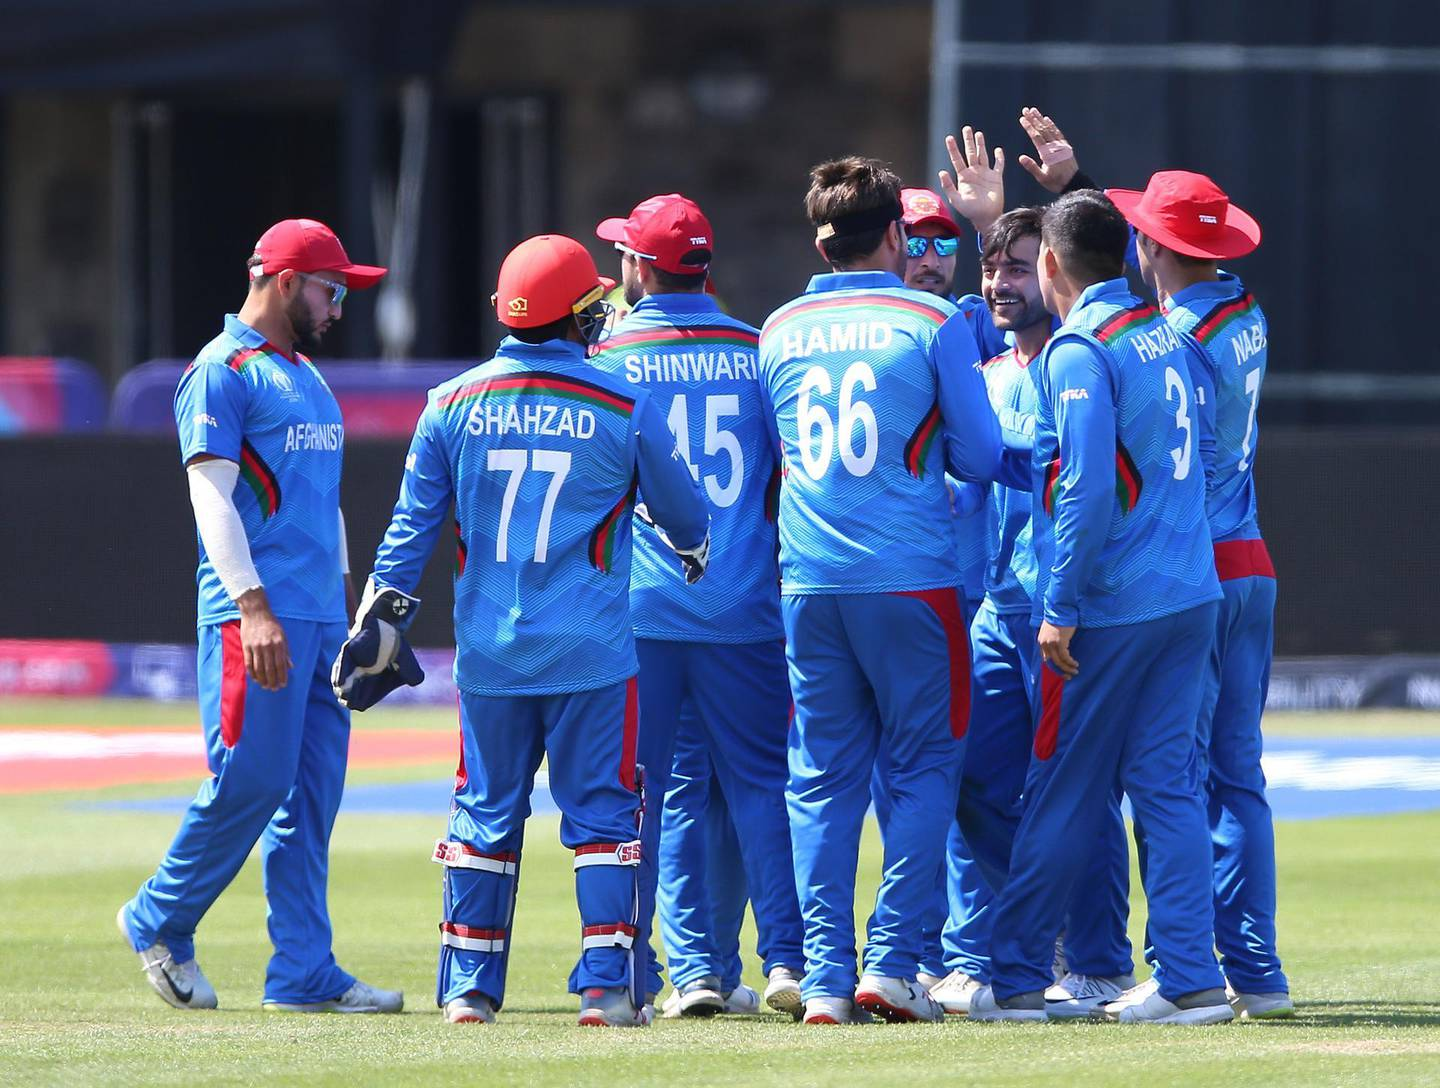 Afghanistan's players celebrate after taking the wicket of Pakistan's Mohammad Hafeez during the ICC Cricket World Cup Warm up match at The Bristol County Ground. PRESS ASSOCIATION Photo. Picture date: Friday May 24, 2019. See PA story CRICKET Pakistan. Photo credit should read: Nigel French/PA Wire. RESTRICTIONS: Editorial use only. No commercial use. Still image use only.